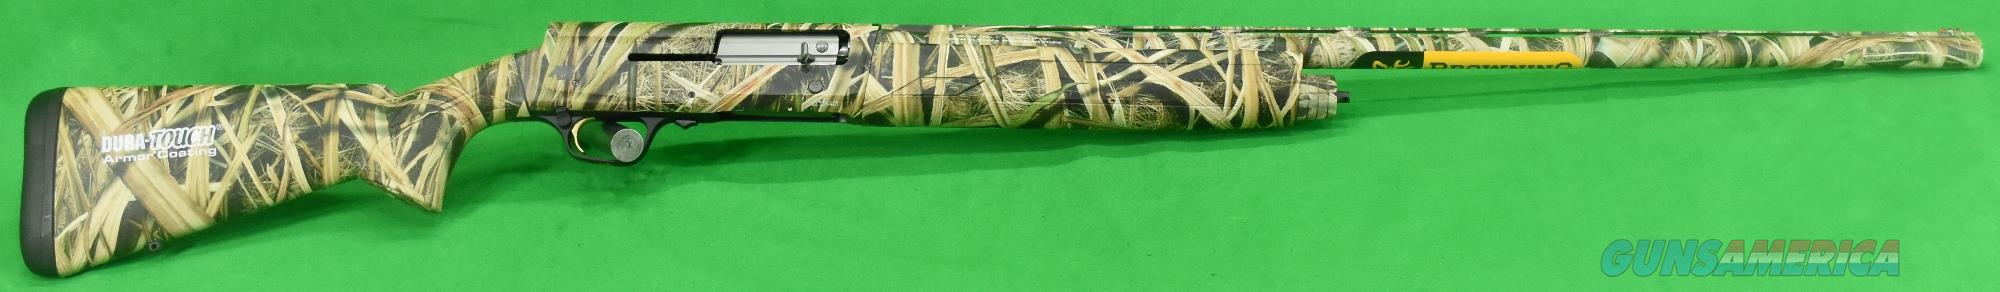 A5 Mossy Oak Blades Camo 12Ga 30-3.5In  0118182003  Guns > Shotguns > Browning Shotguns > Autoloaders > Hunting